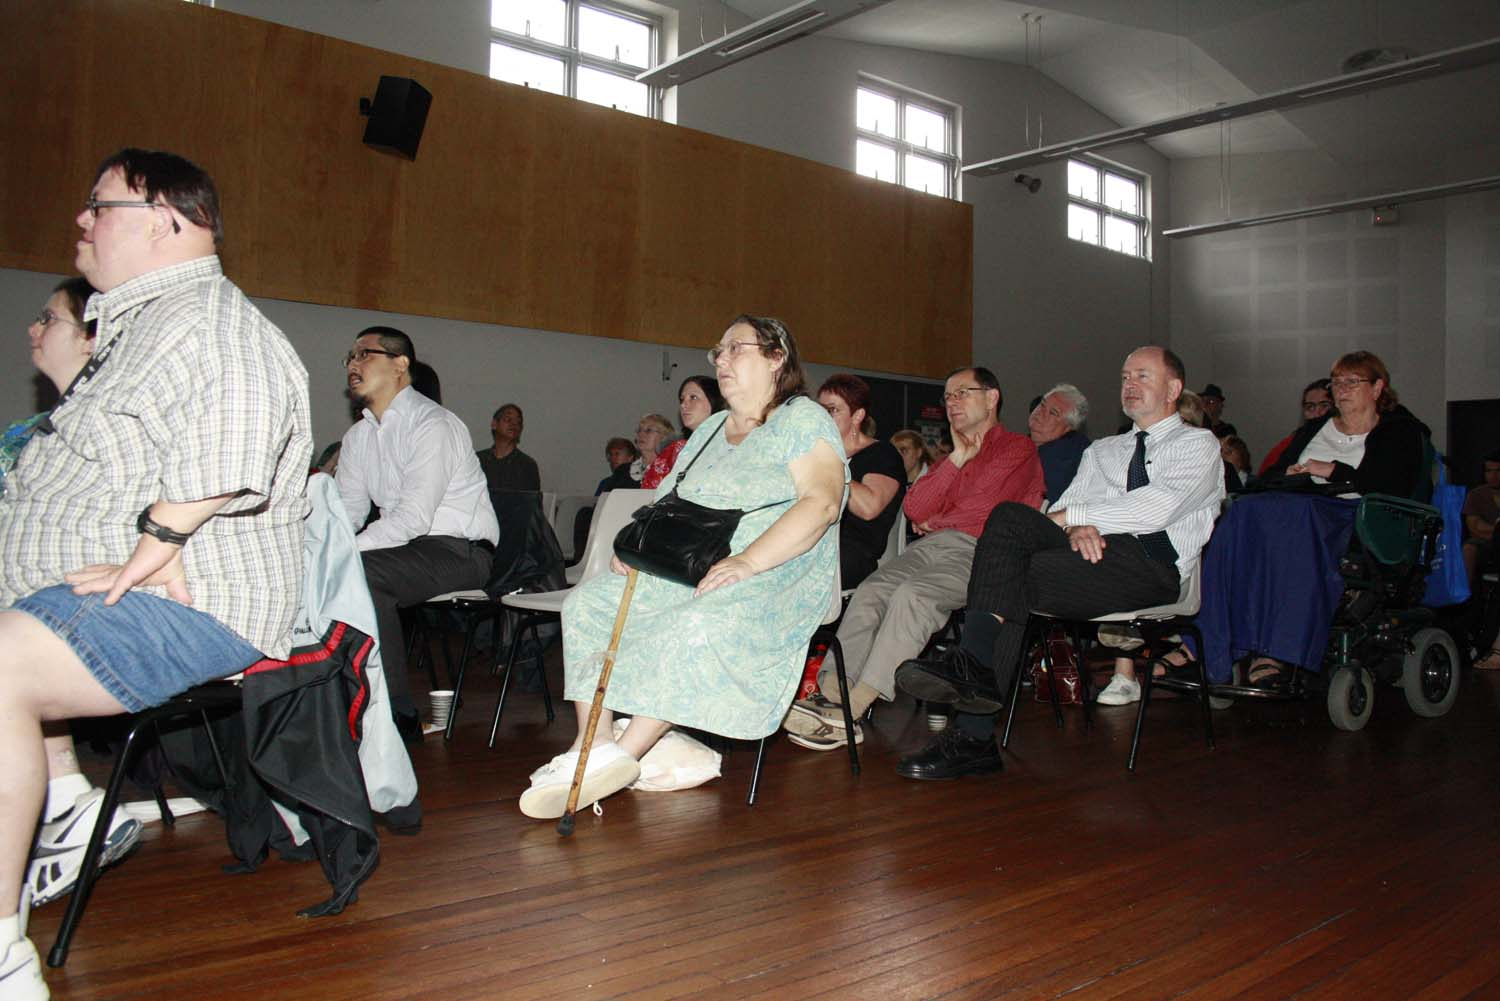 Audience at the event